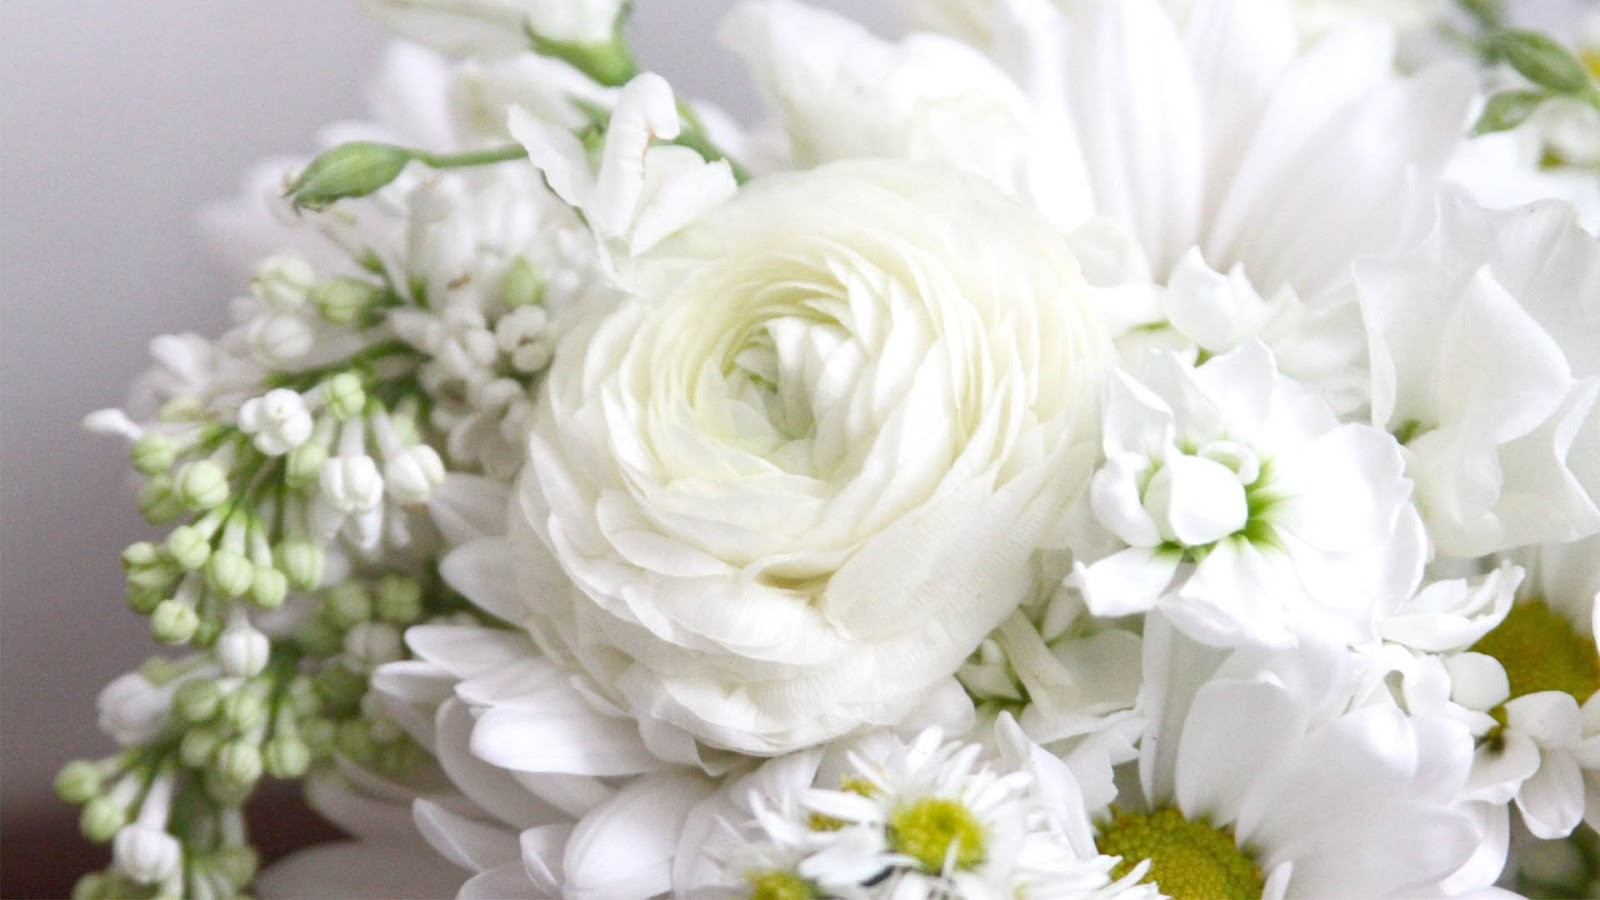 Best White Rose Flowers Wallpapers - Entertainment Only  |Beautiful White Rose Flowers